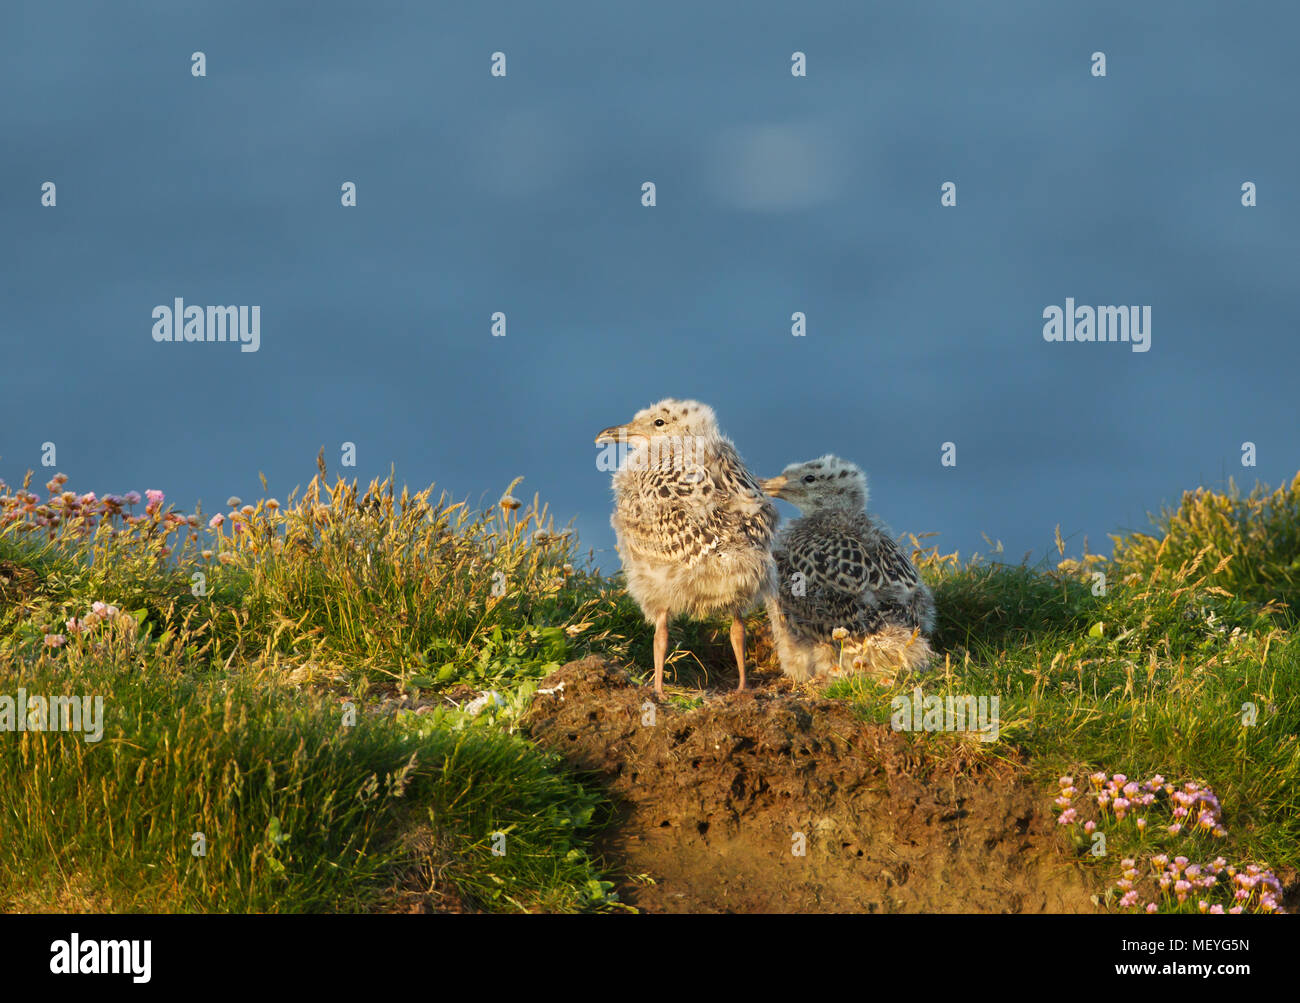 Two European herring gull chicks standing by the nest in grass on a sunny summer day, Scotland, UK. - Stock Image